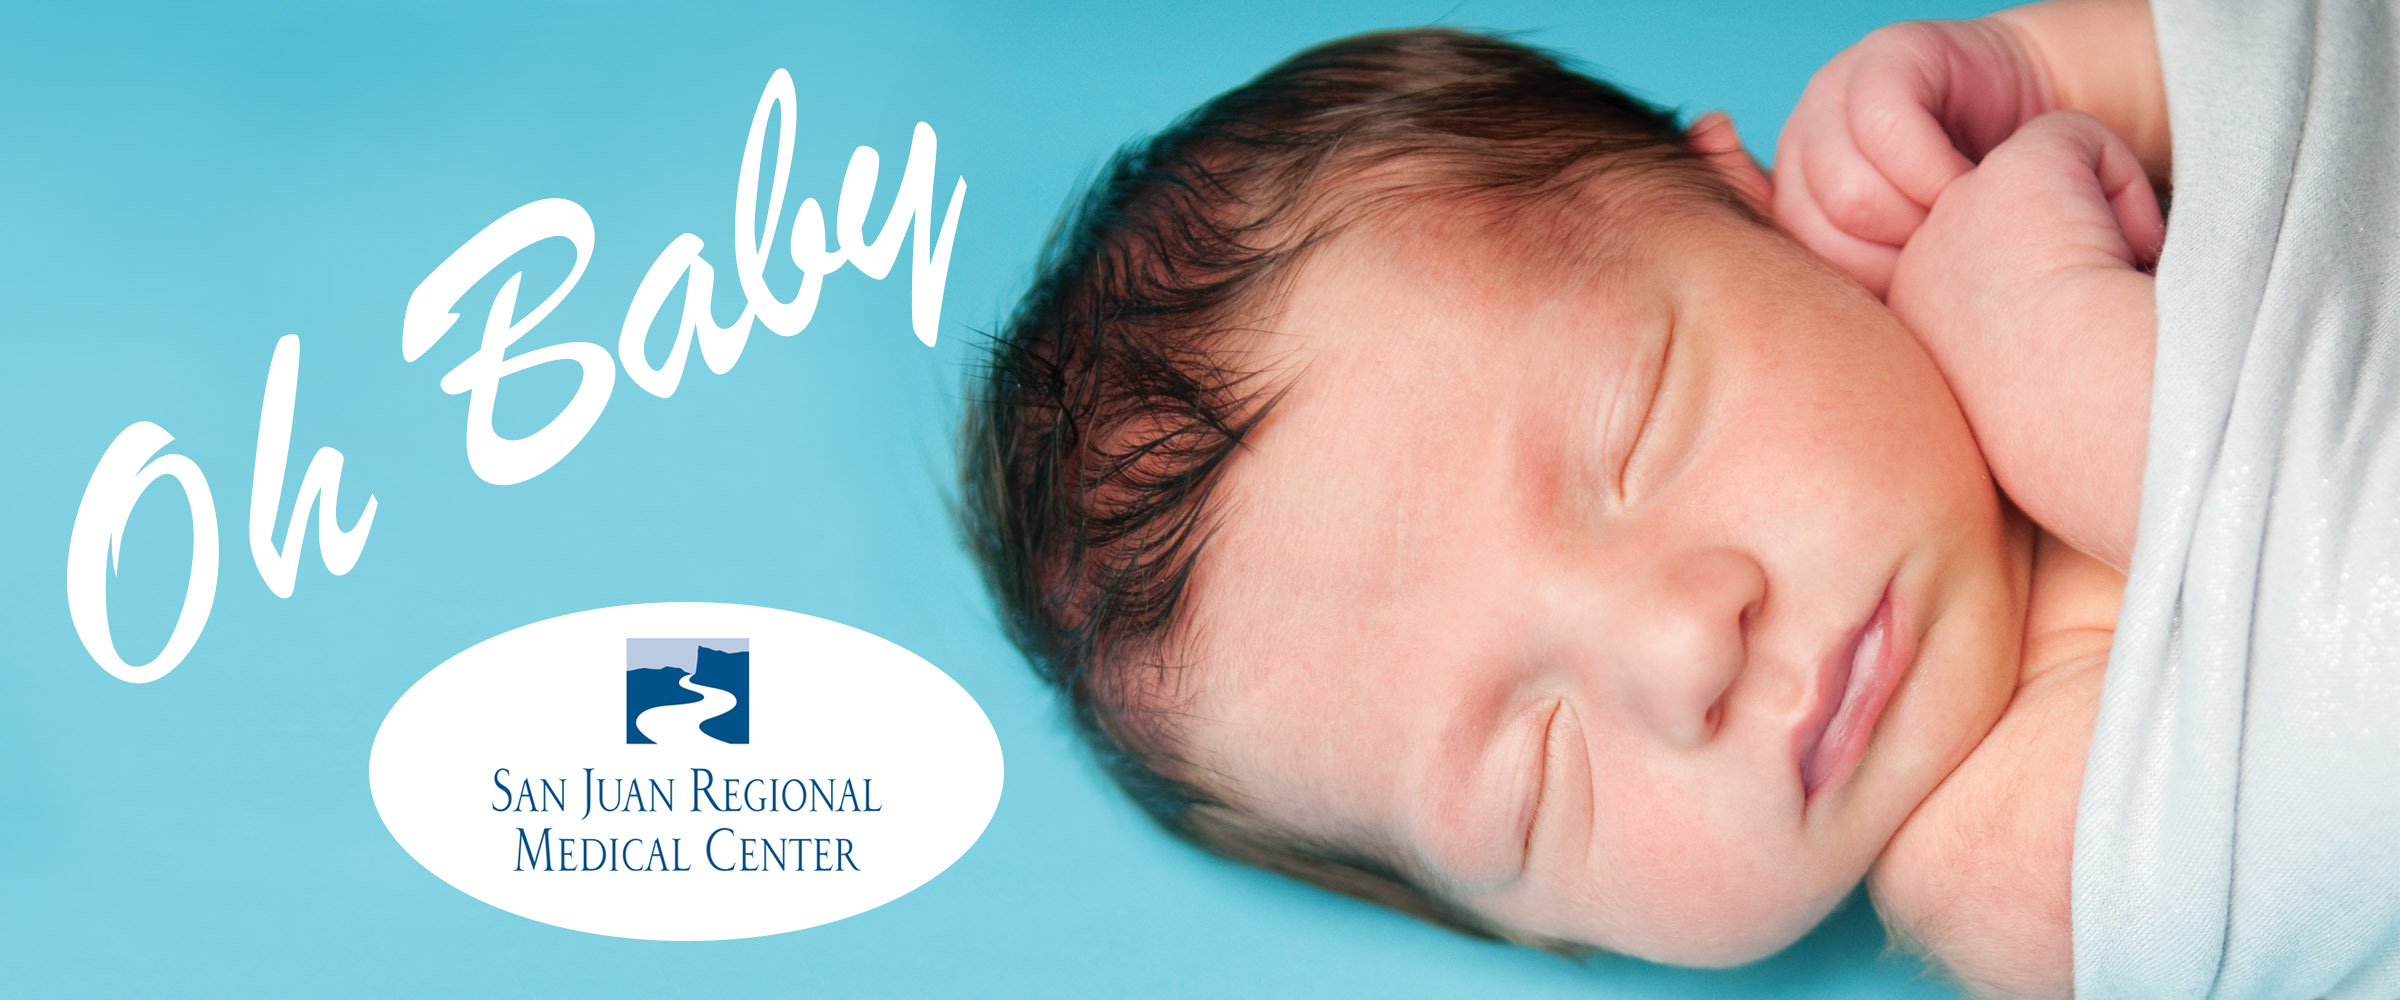 Oh Baby! - Your resource for everything Baby from the Childbirth Center at San Juan Regional Medical Center. Join the incredible adventure today.